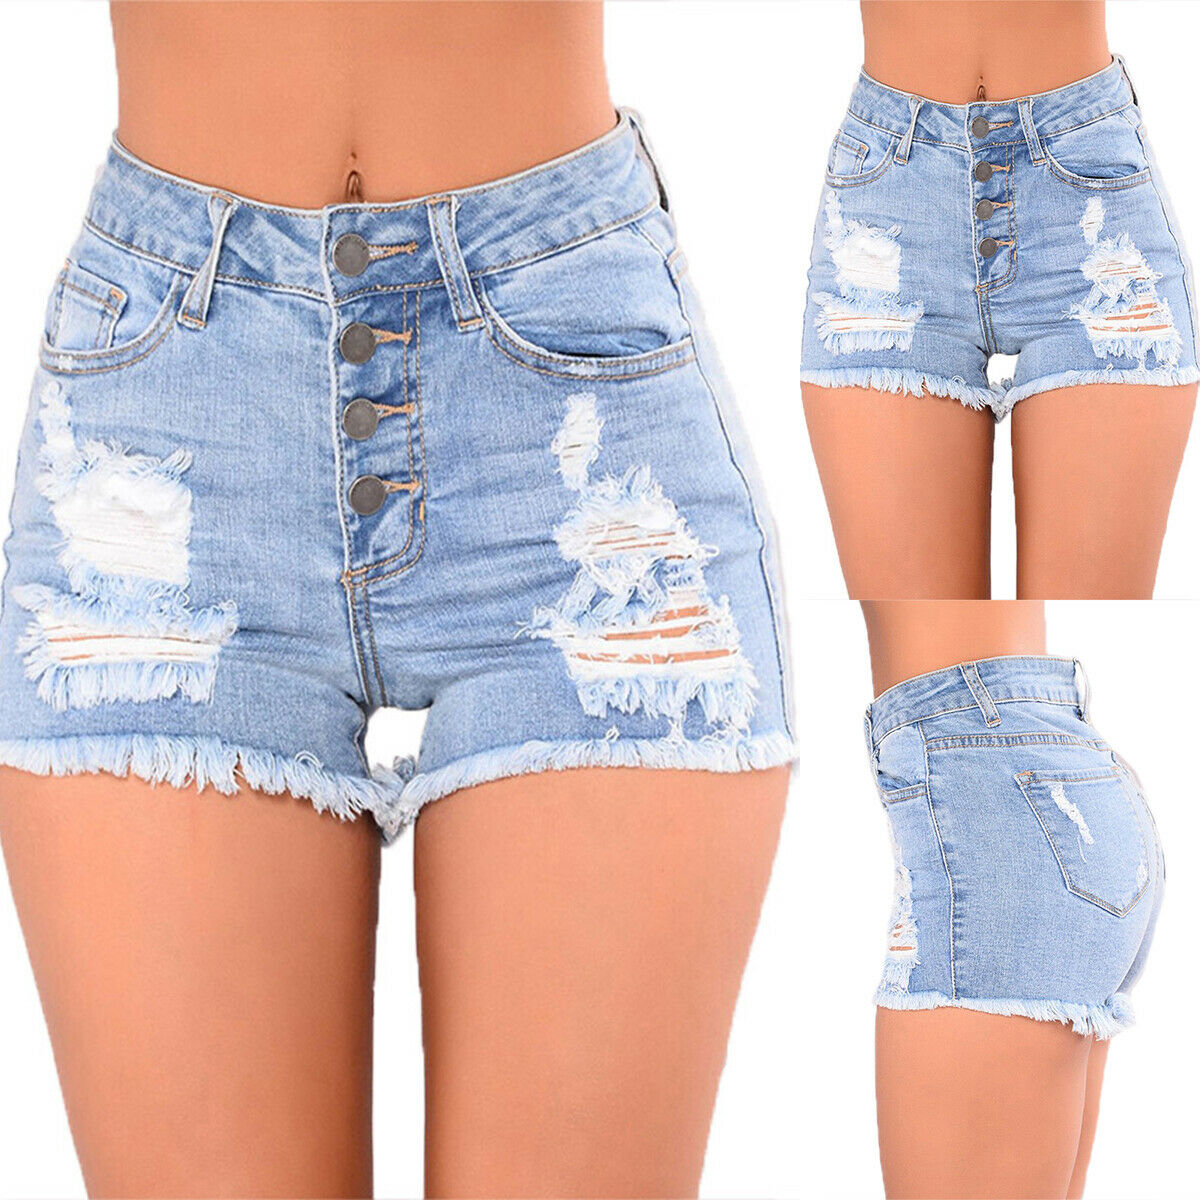 Womens High Waisted Denim Jeans Shorts Summer Casual Skinny Hot Short Pants Size